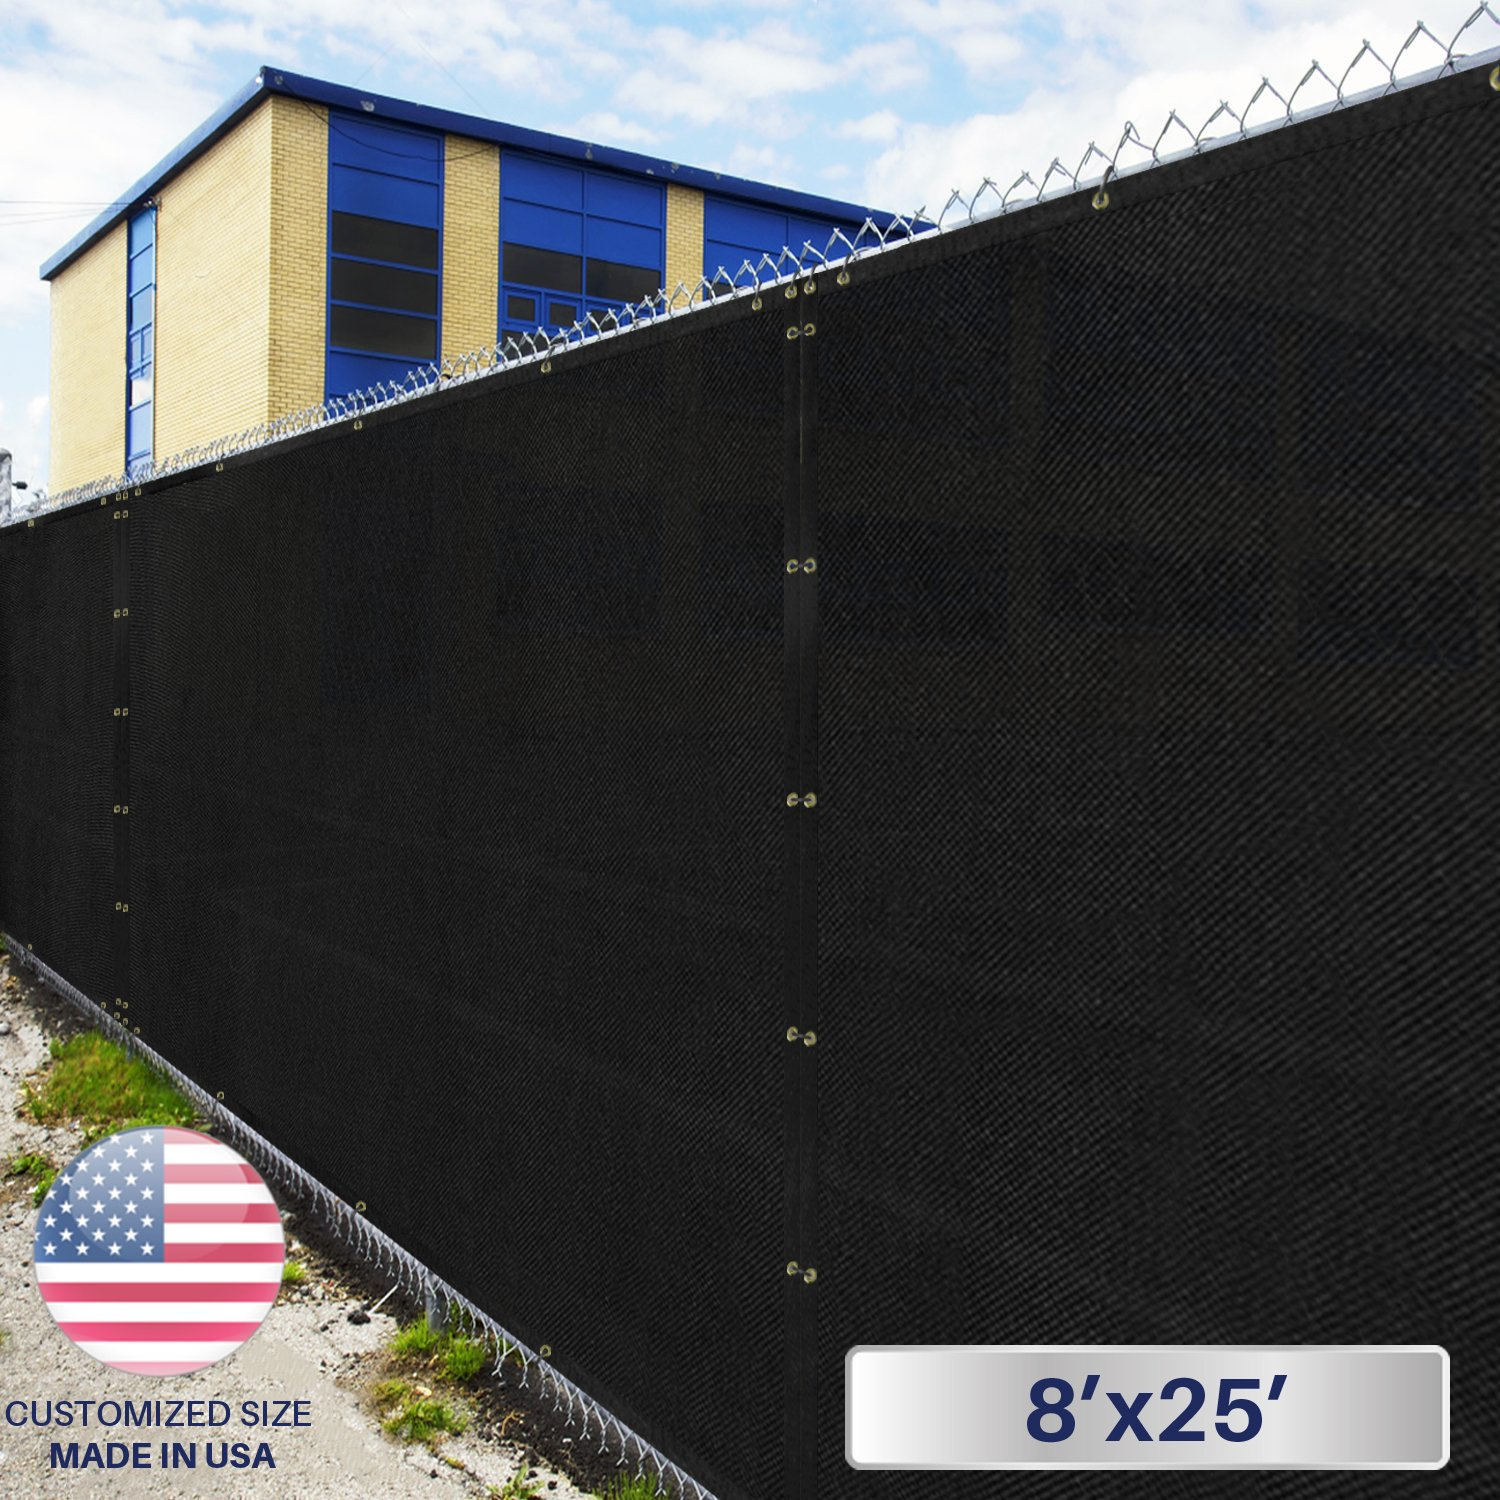 8' x 25' Privacy Fence Screen in Black with Brass Grommet 85% Blockage Windscreen Outdoor Mesh Fencing Cover Netting 150GSM Fabric - Custom